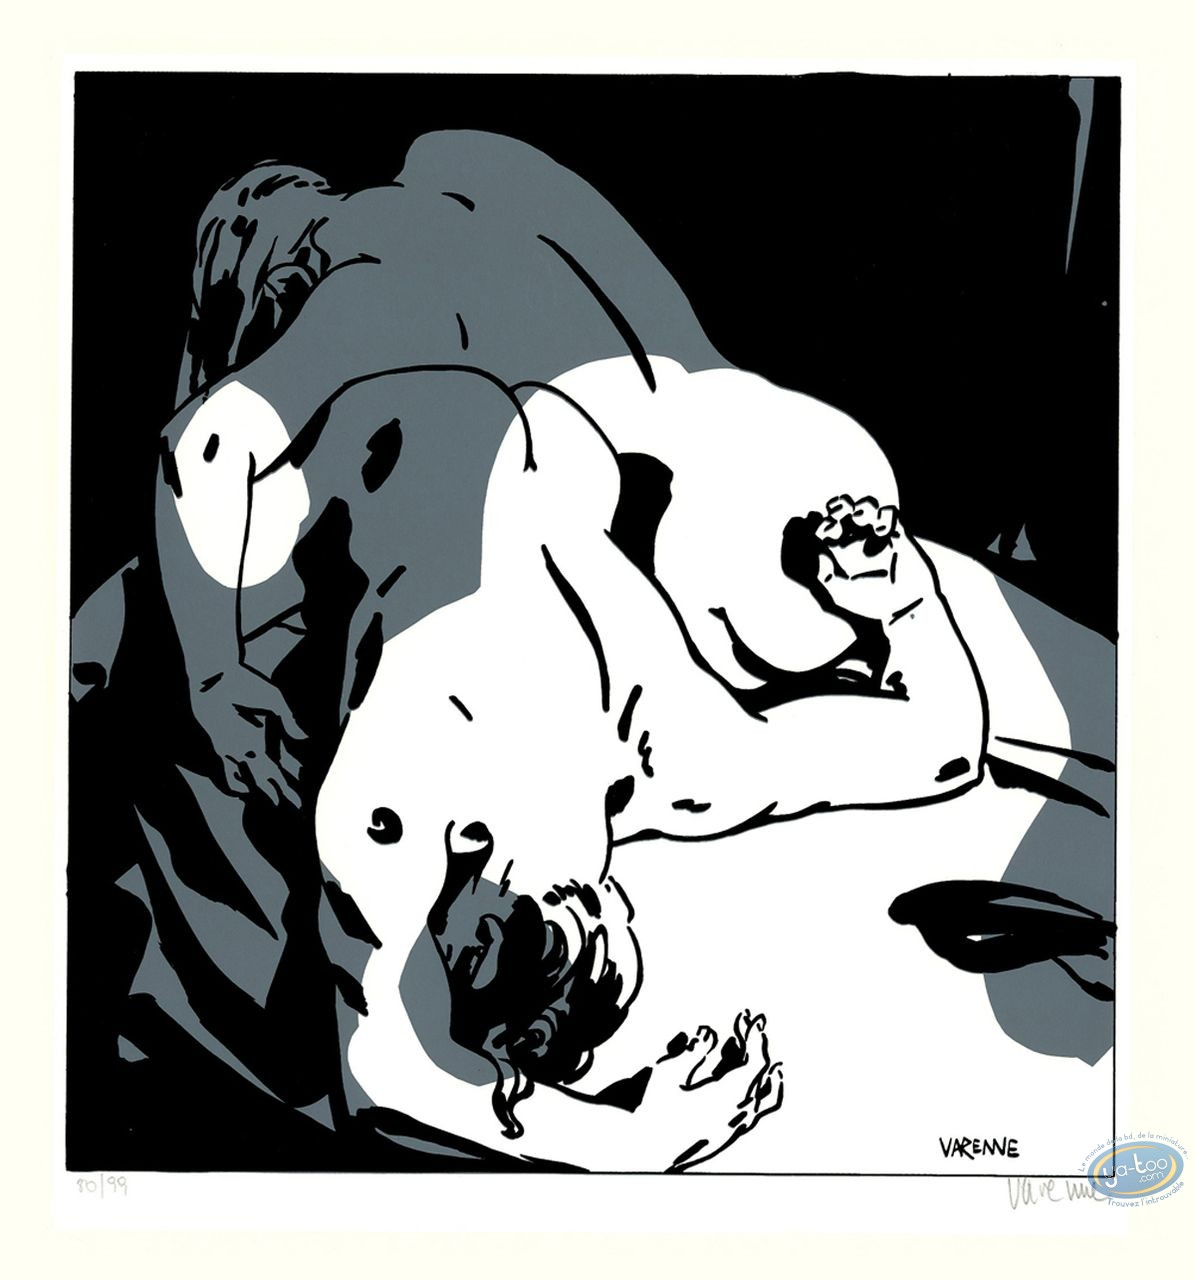 Serigraph Print, Corps à Corps : Body to body 7